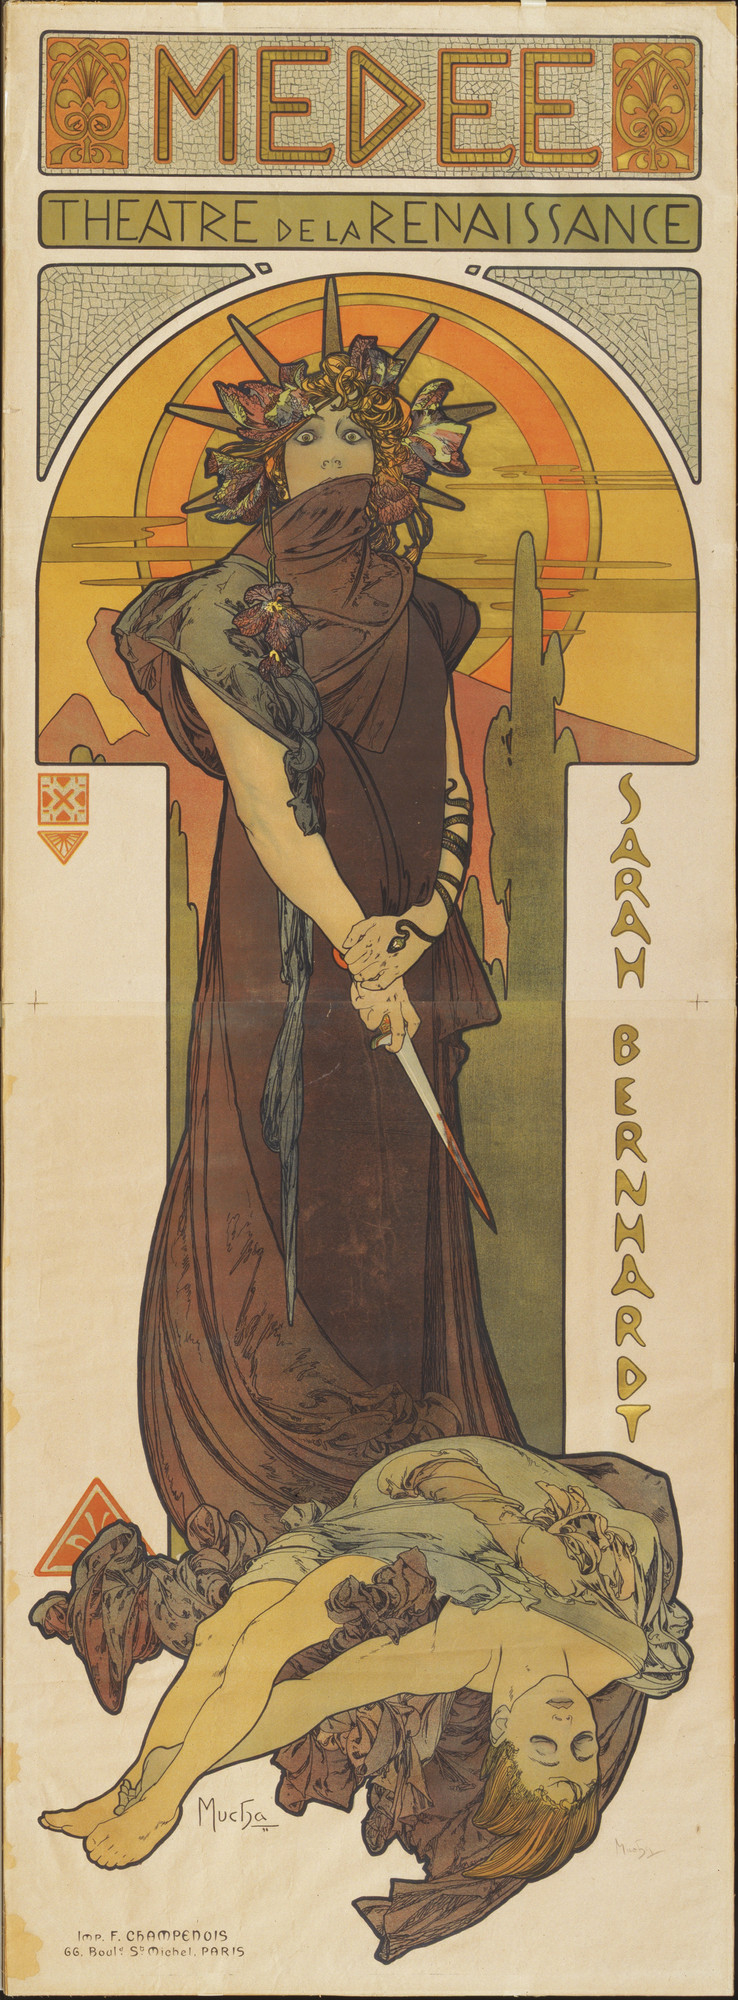 Alphonse Mucha. Medée (Medea) (Poster for a performance by Sarah Bernhardt at the Théâtre de la Renaissance, Paris). 1898